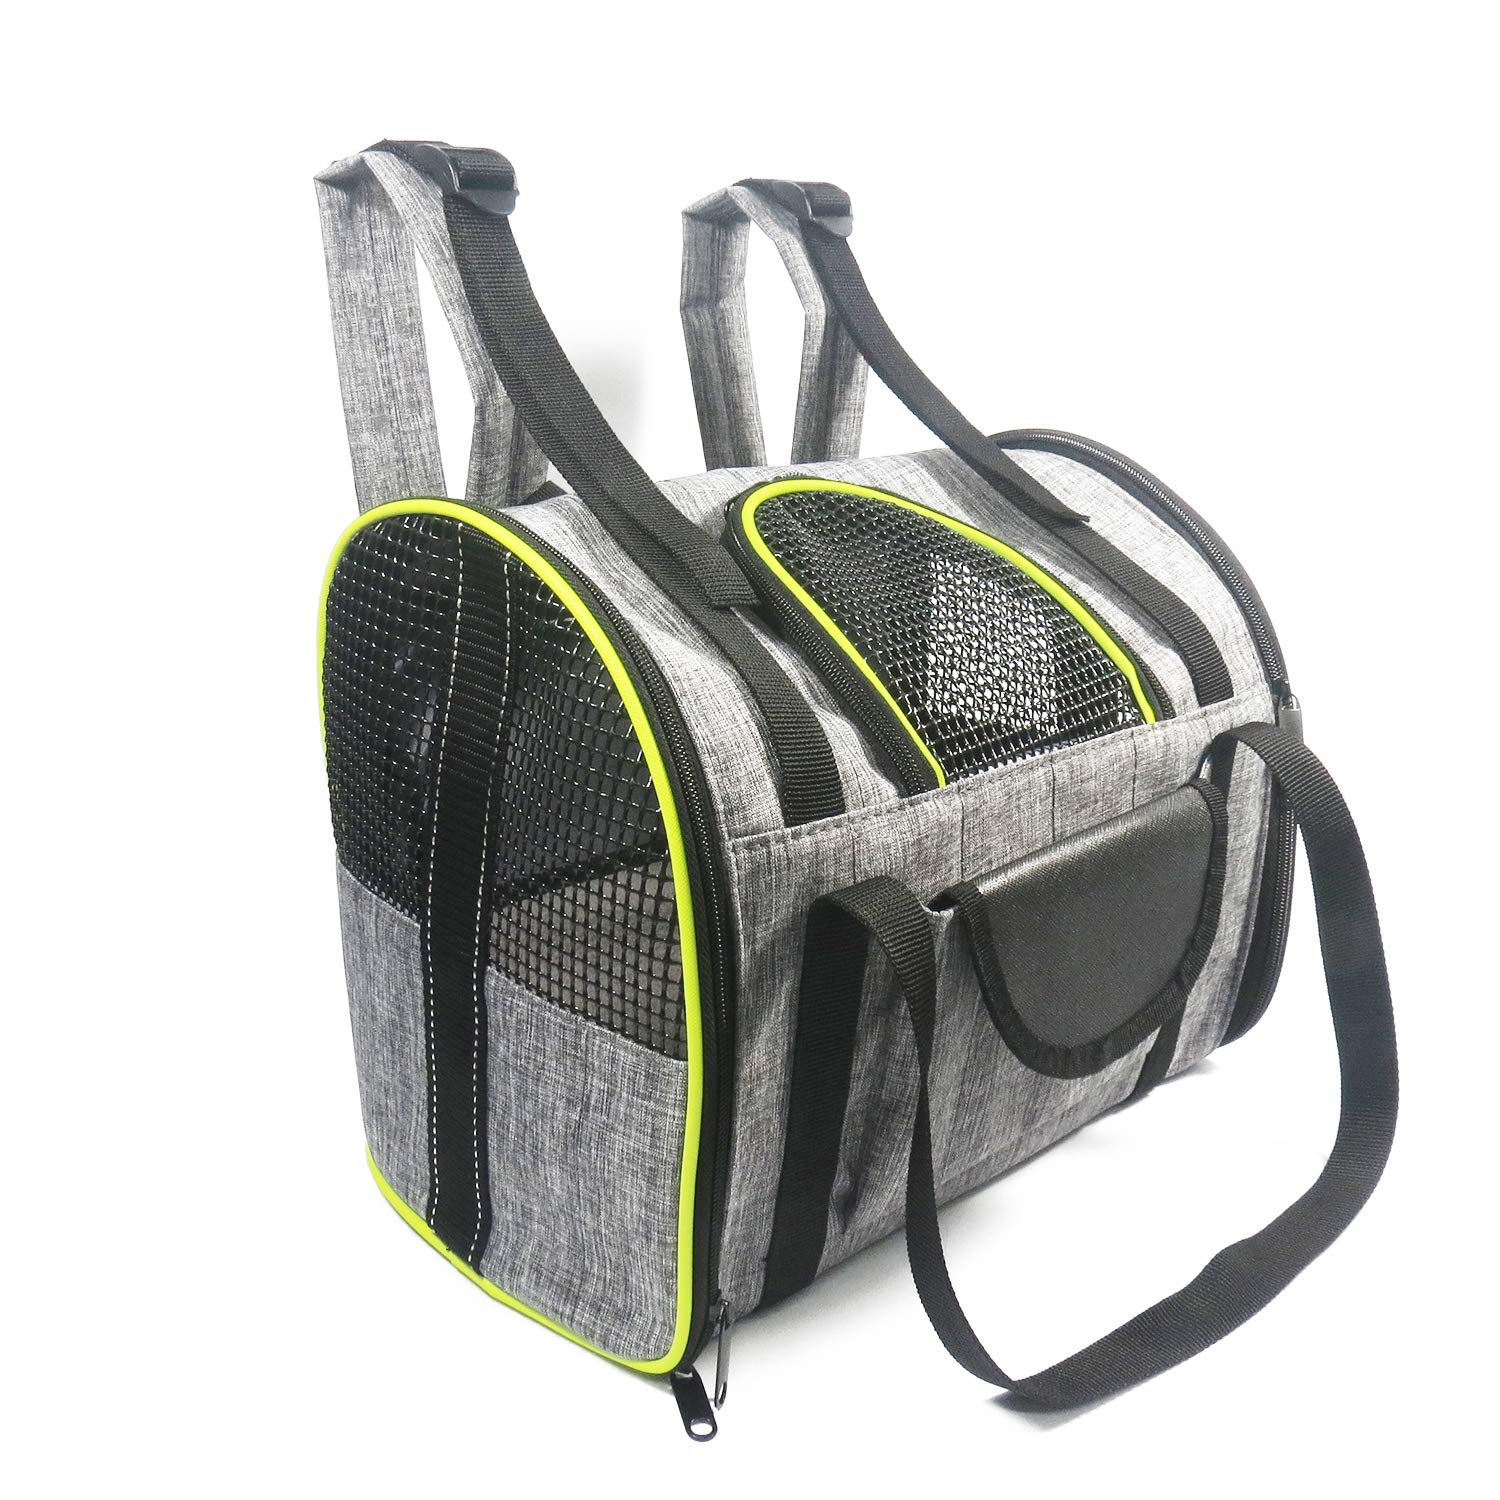 Dog Carrier Backpack, Pet Carrier Bag with Mesh for Small Dogs Cats Puppies, Comfort Cat Backpack Bag for Hiking Travel Camping Airline Approved Outdoor Hold Pets